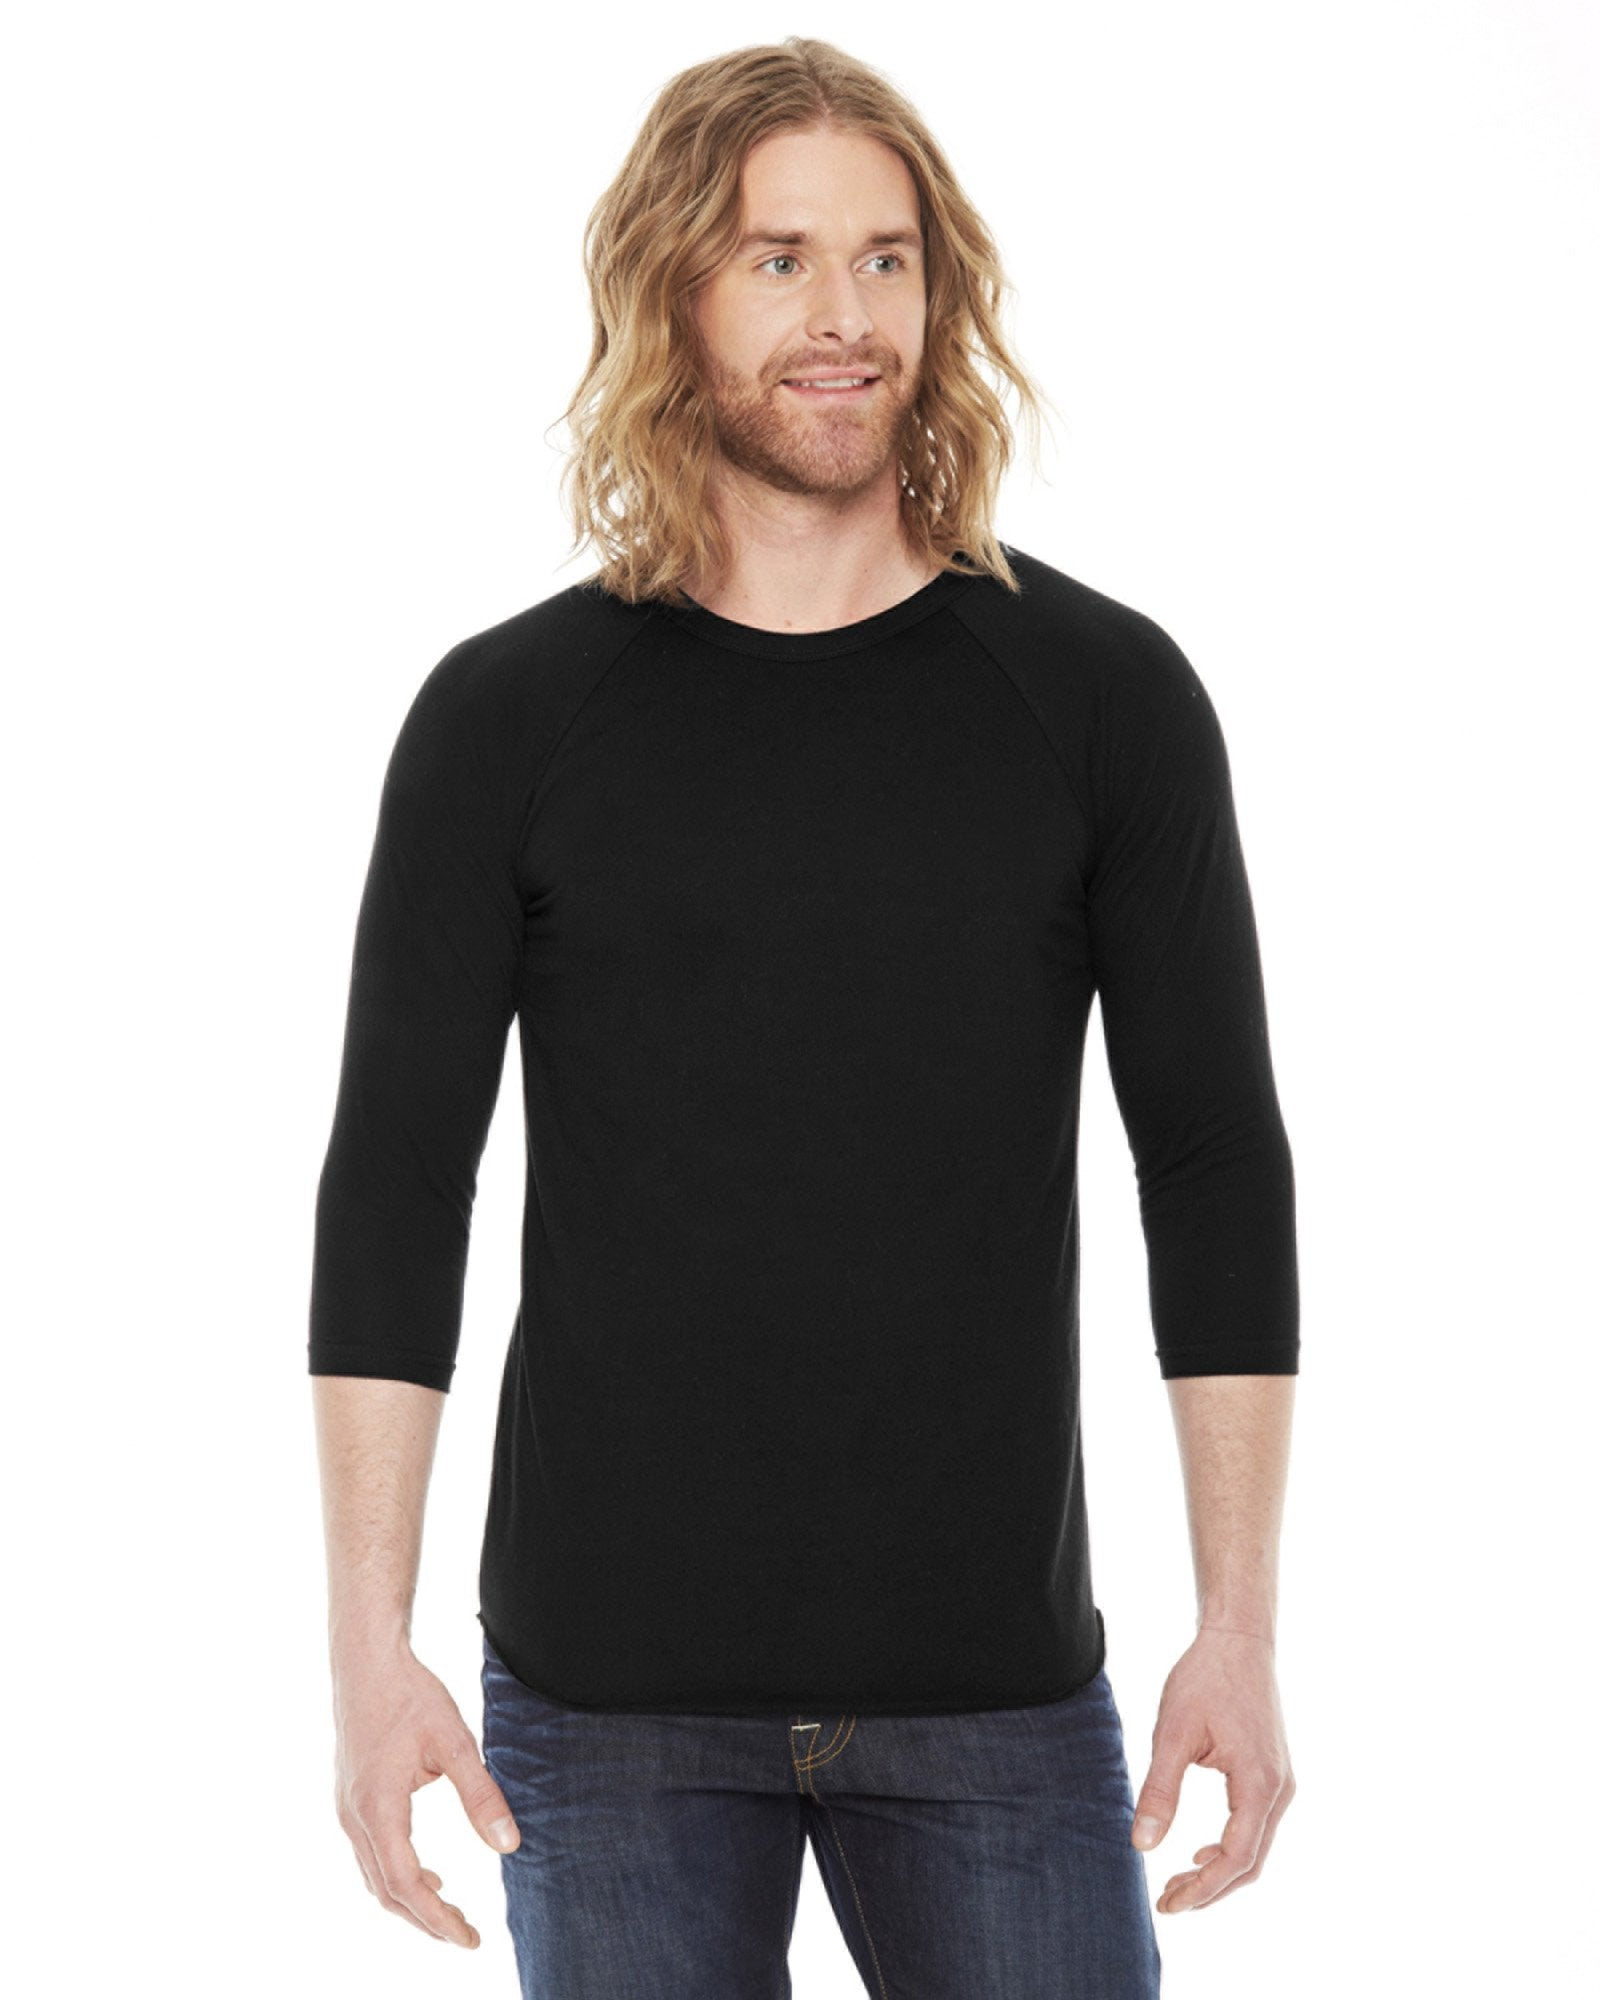 American Apparel - BB453 - Unisex Poly-Cotton 3/4-Sleeve Raglan T-Shirt